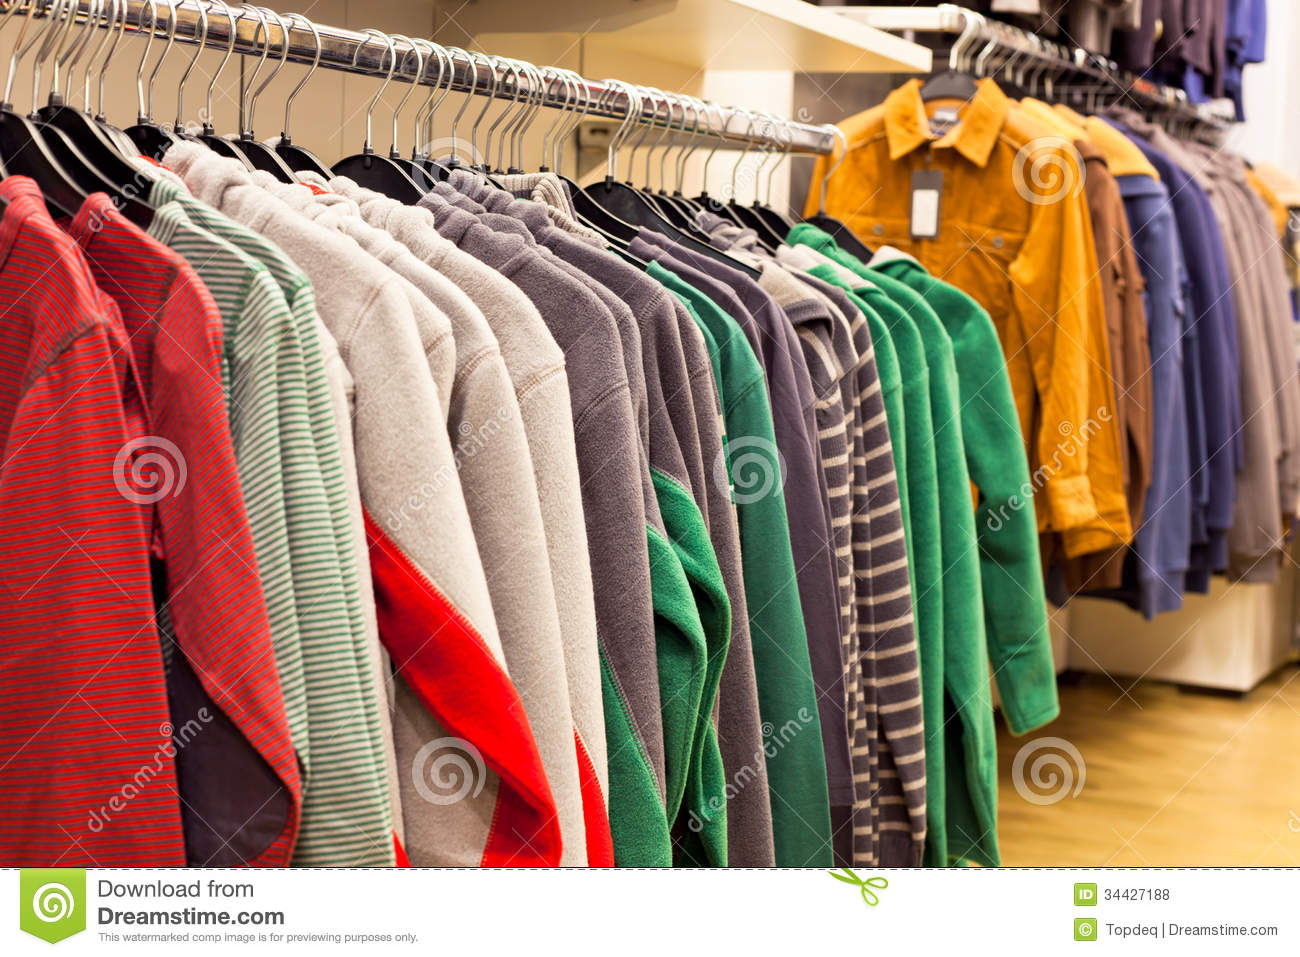 Clothing stores online. Clothing stores for guys